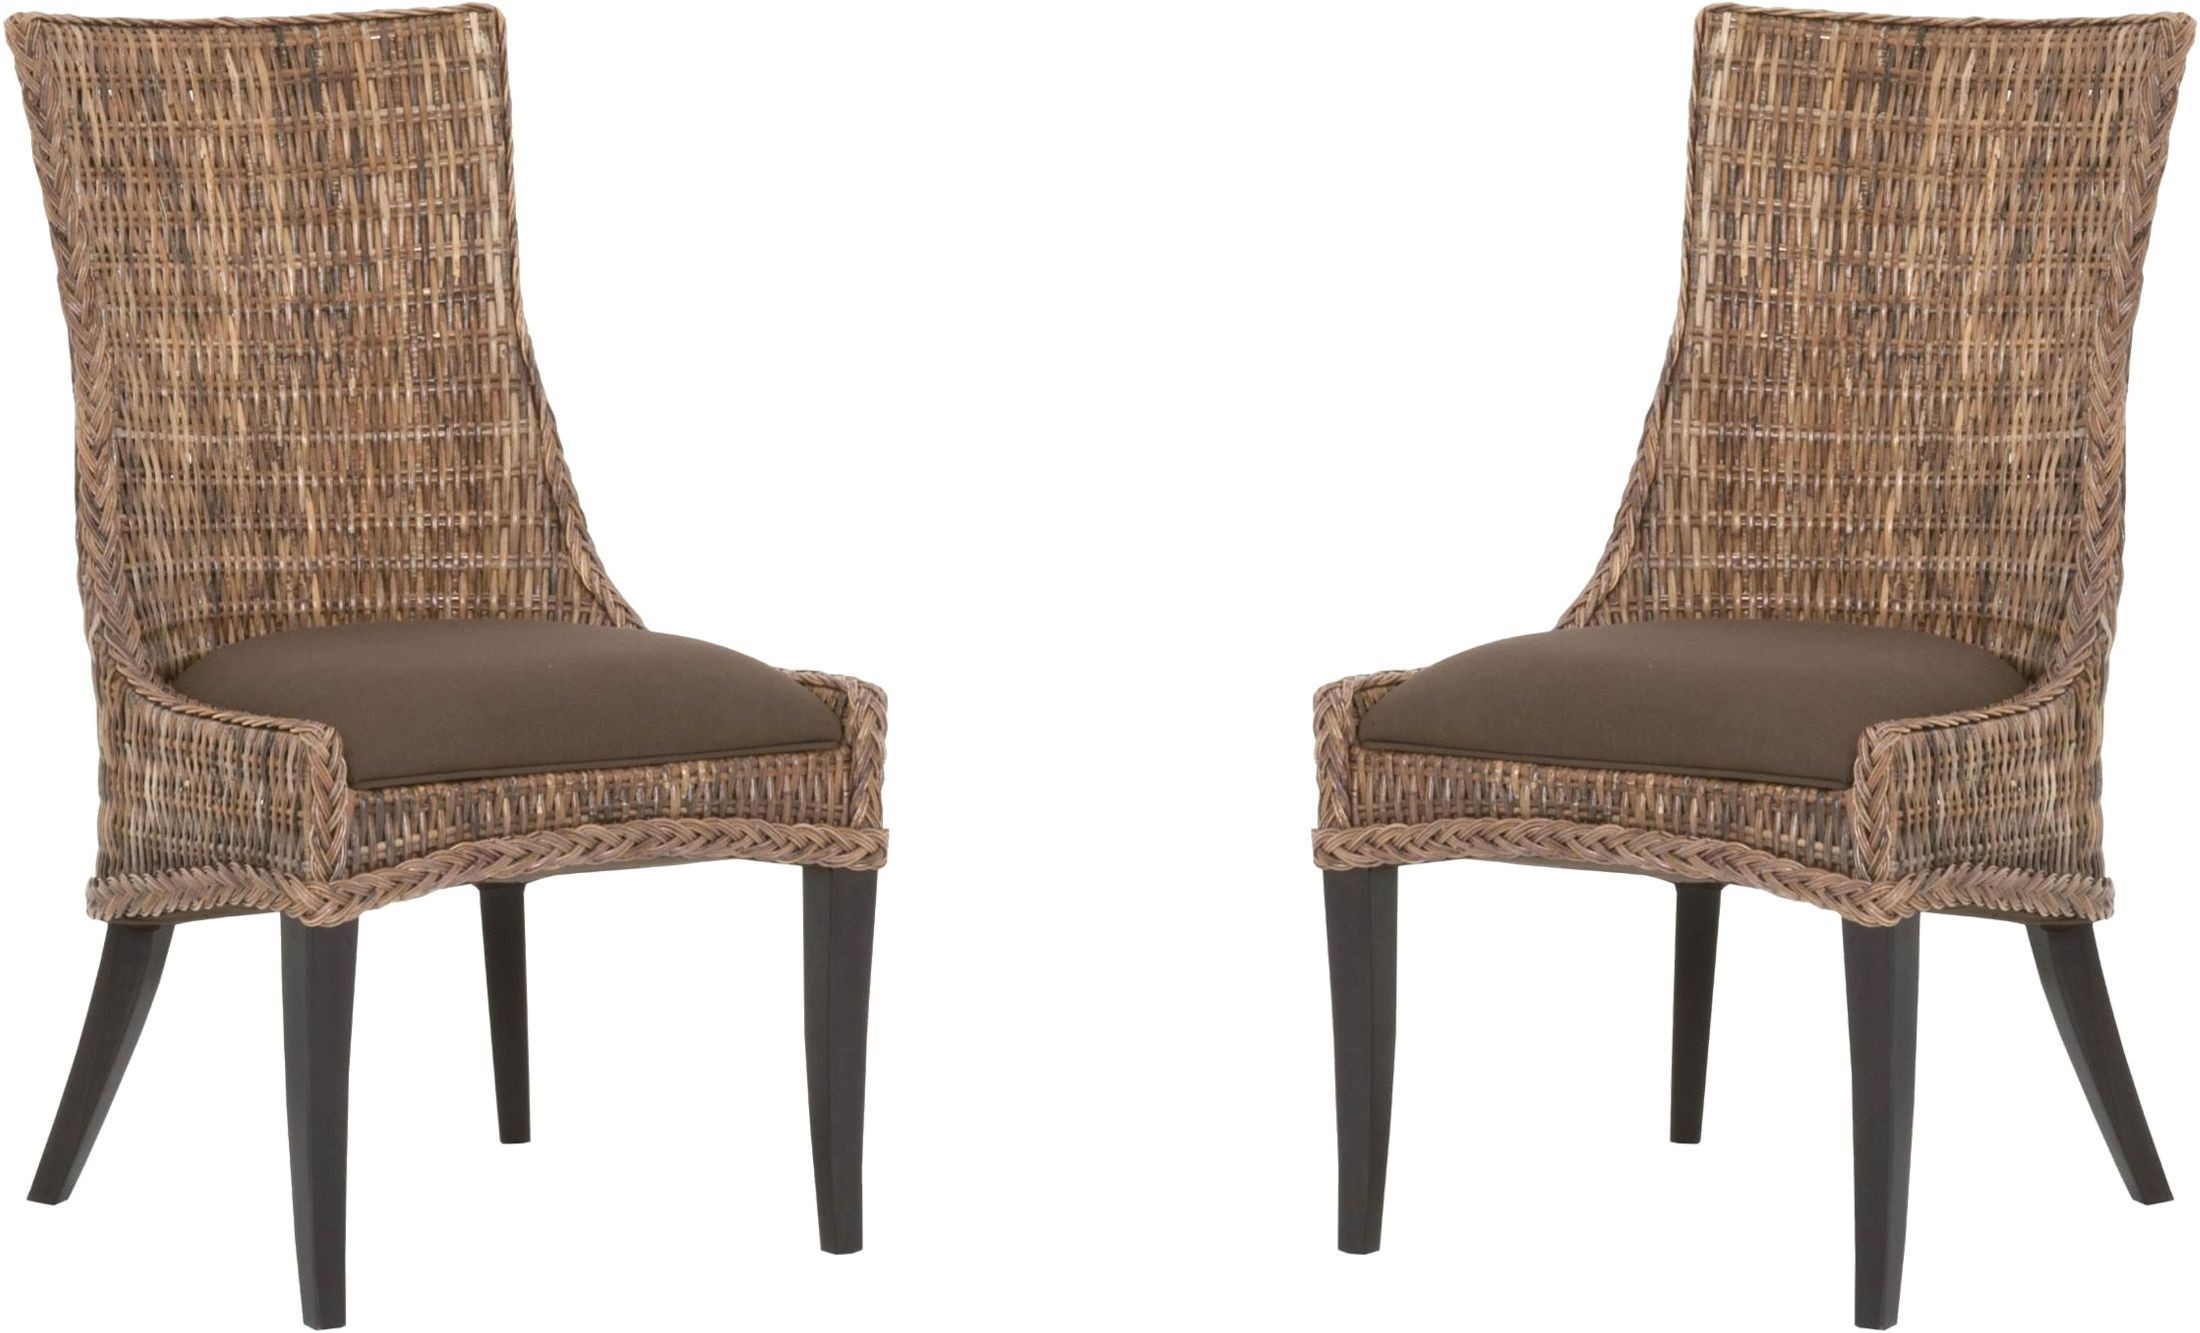 espresso dining chair bliss covers and unique wedding decorations greco brown set of 2 from orient